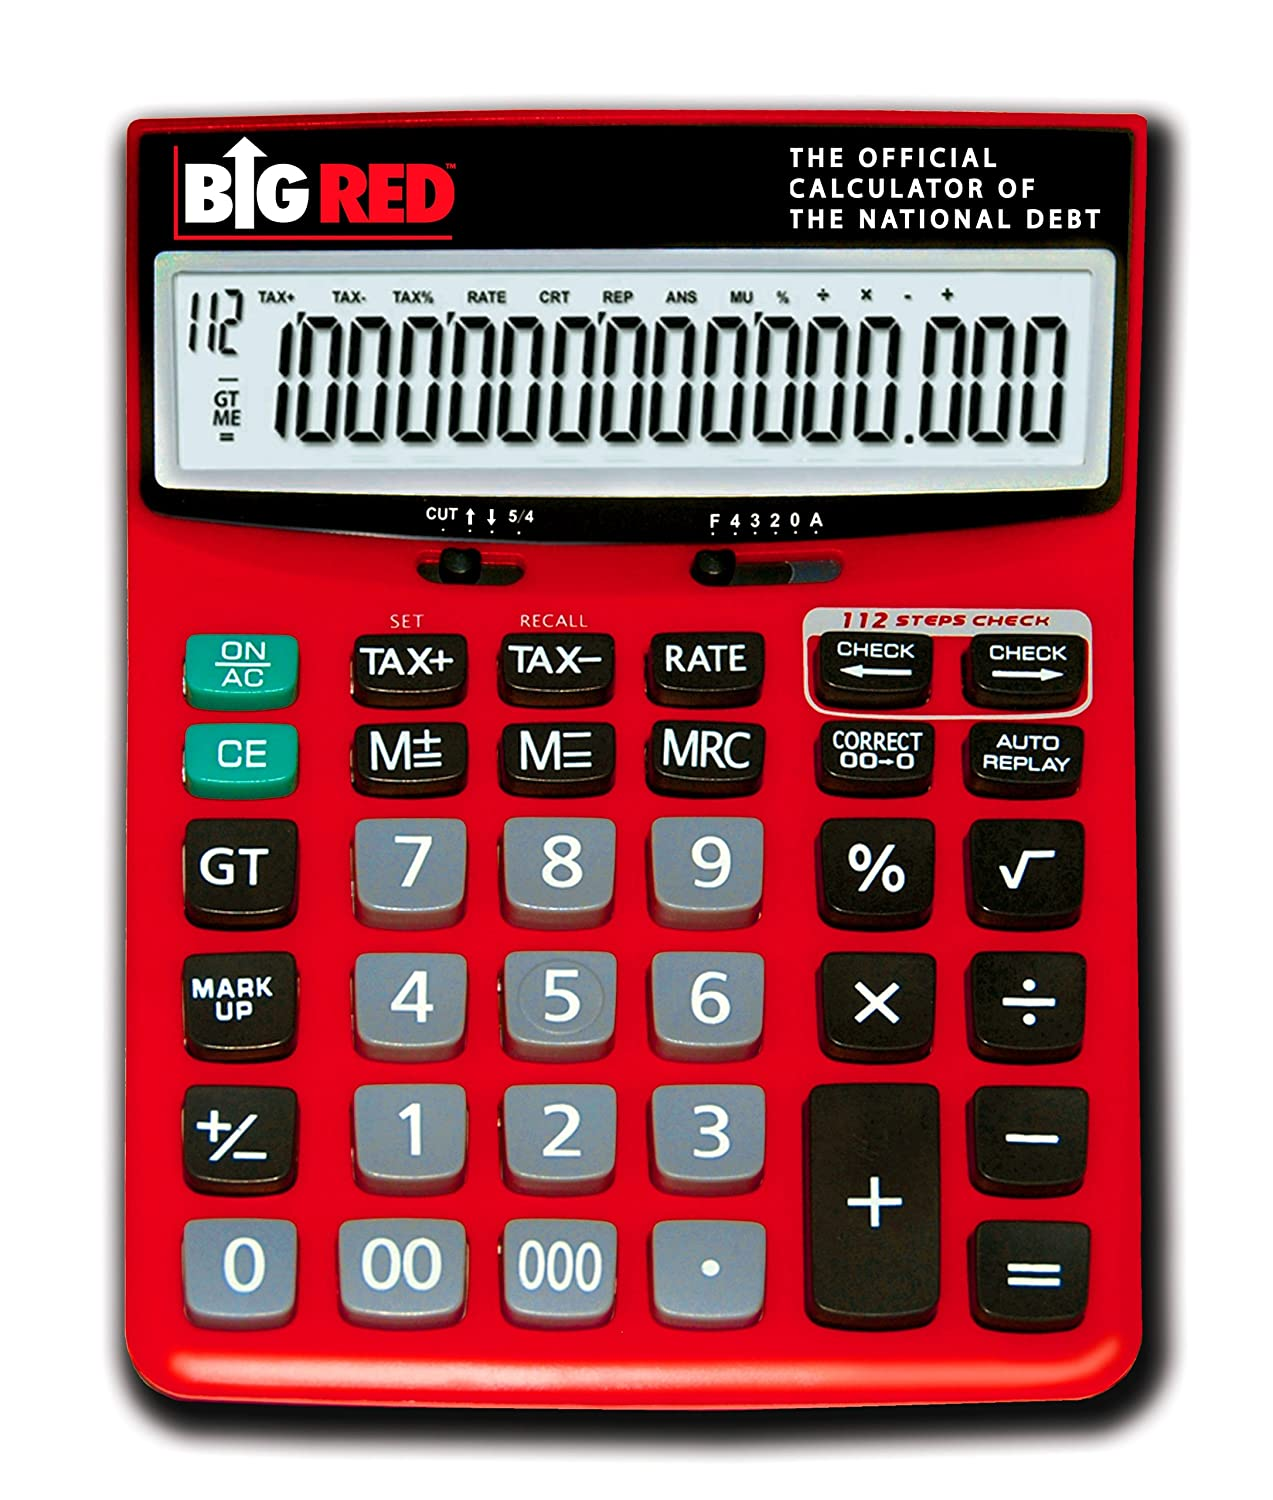 amazoncom big red calculator the official calculator of the national debt financial calculators electronics